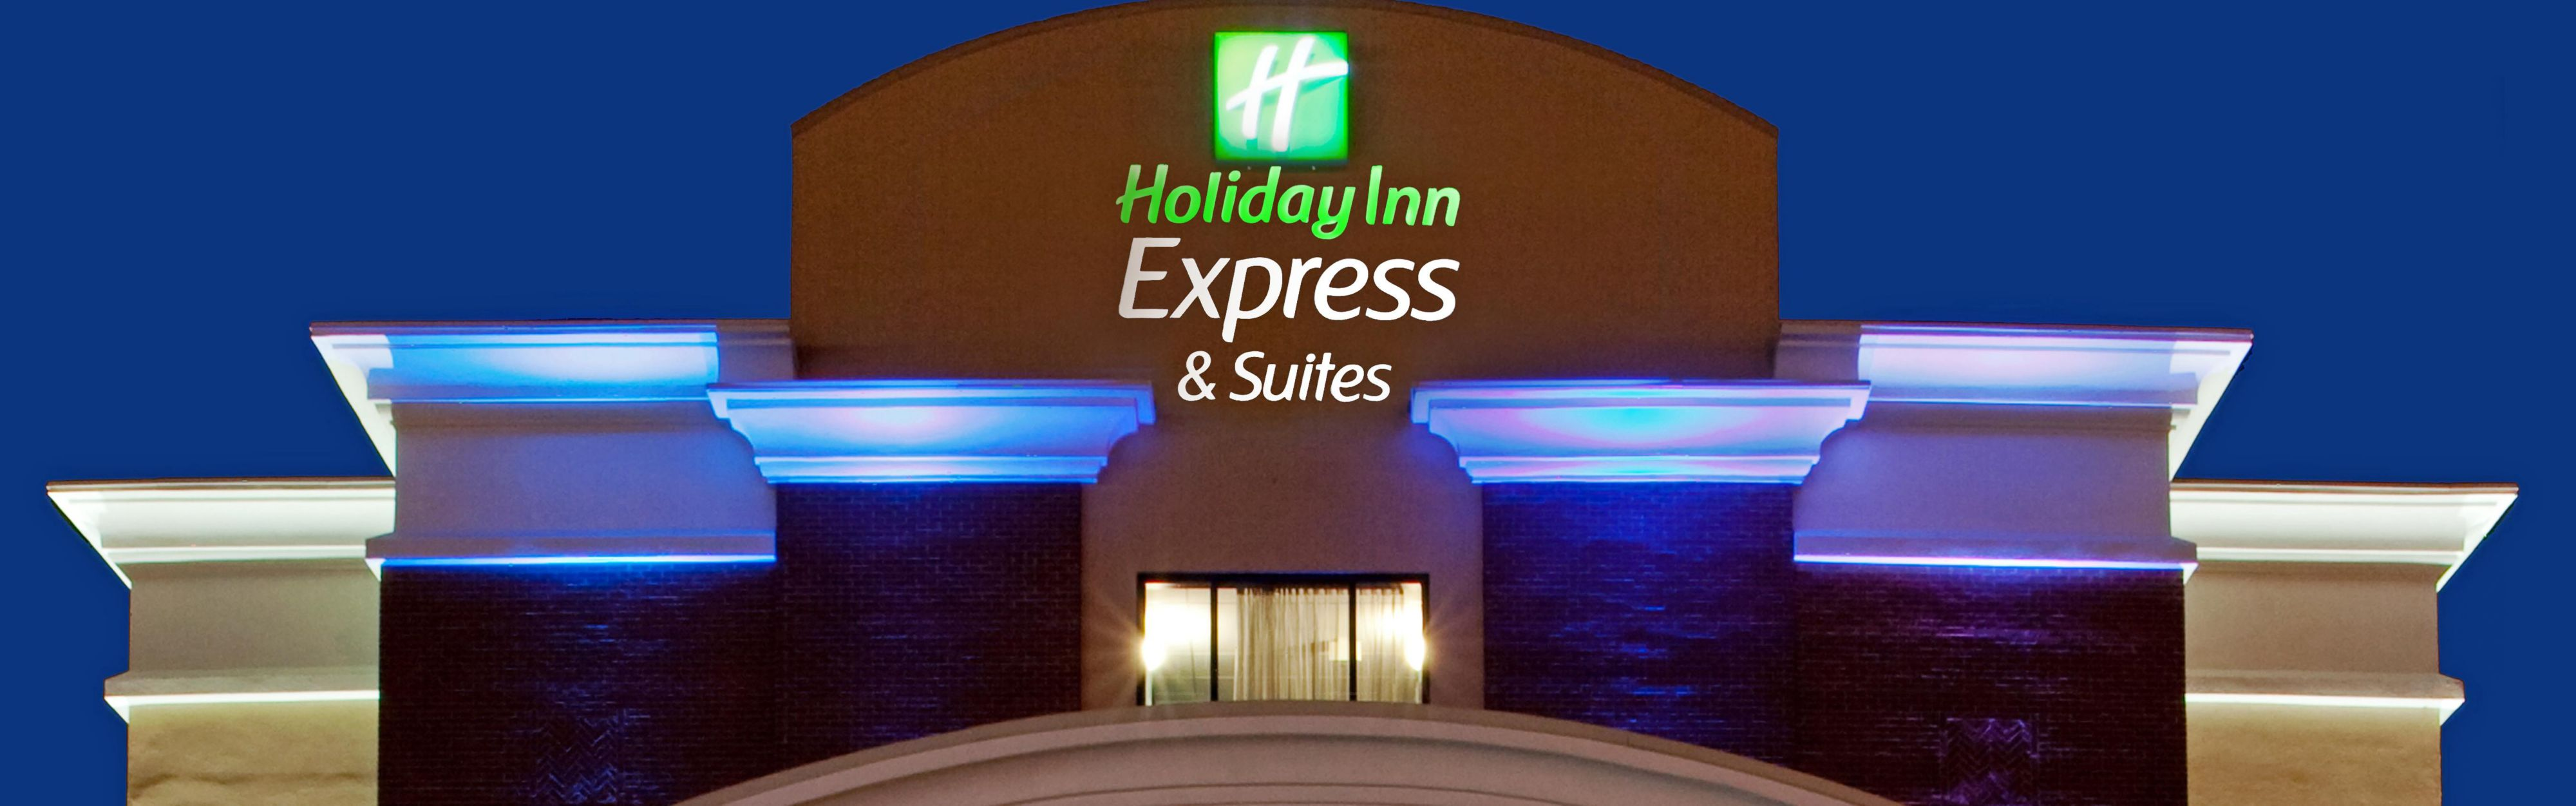 Holiday Inn Express & Suites Norfolk Airport image 0